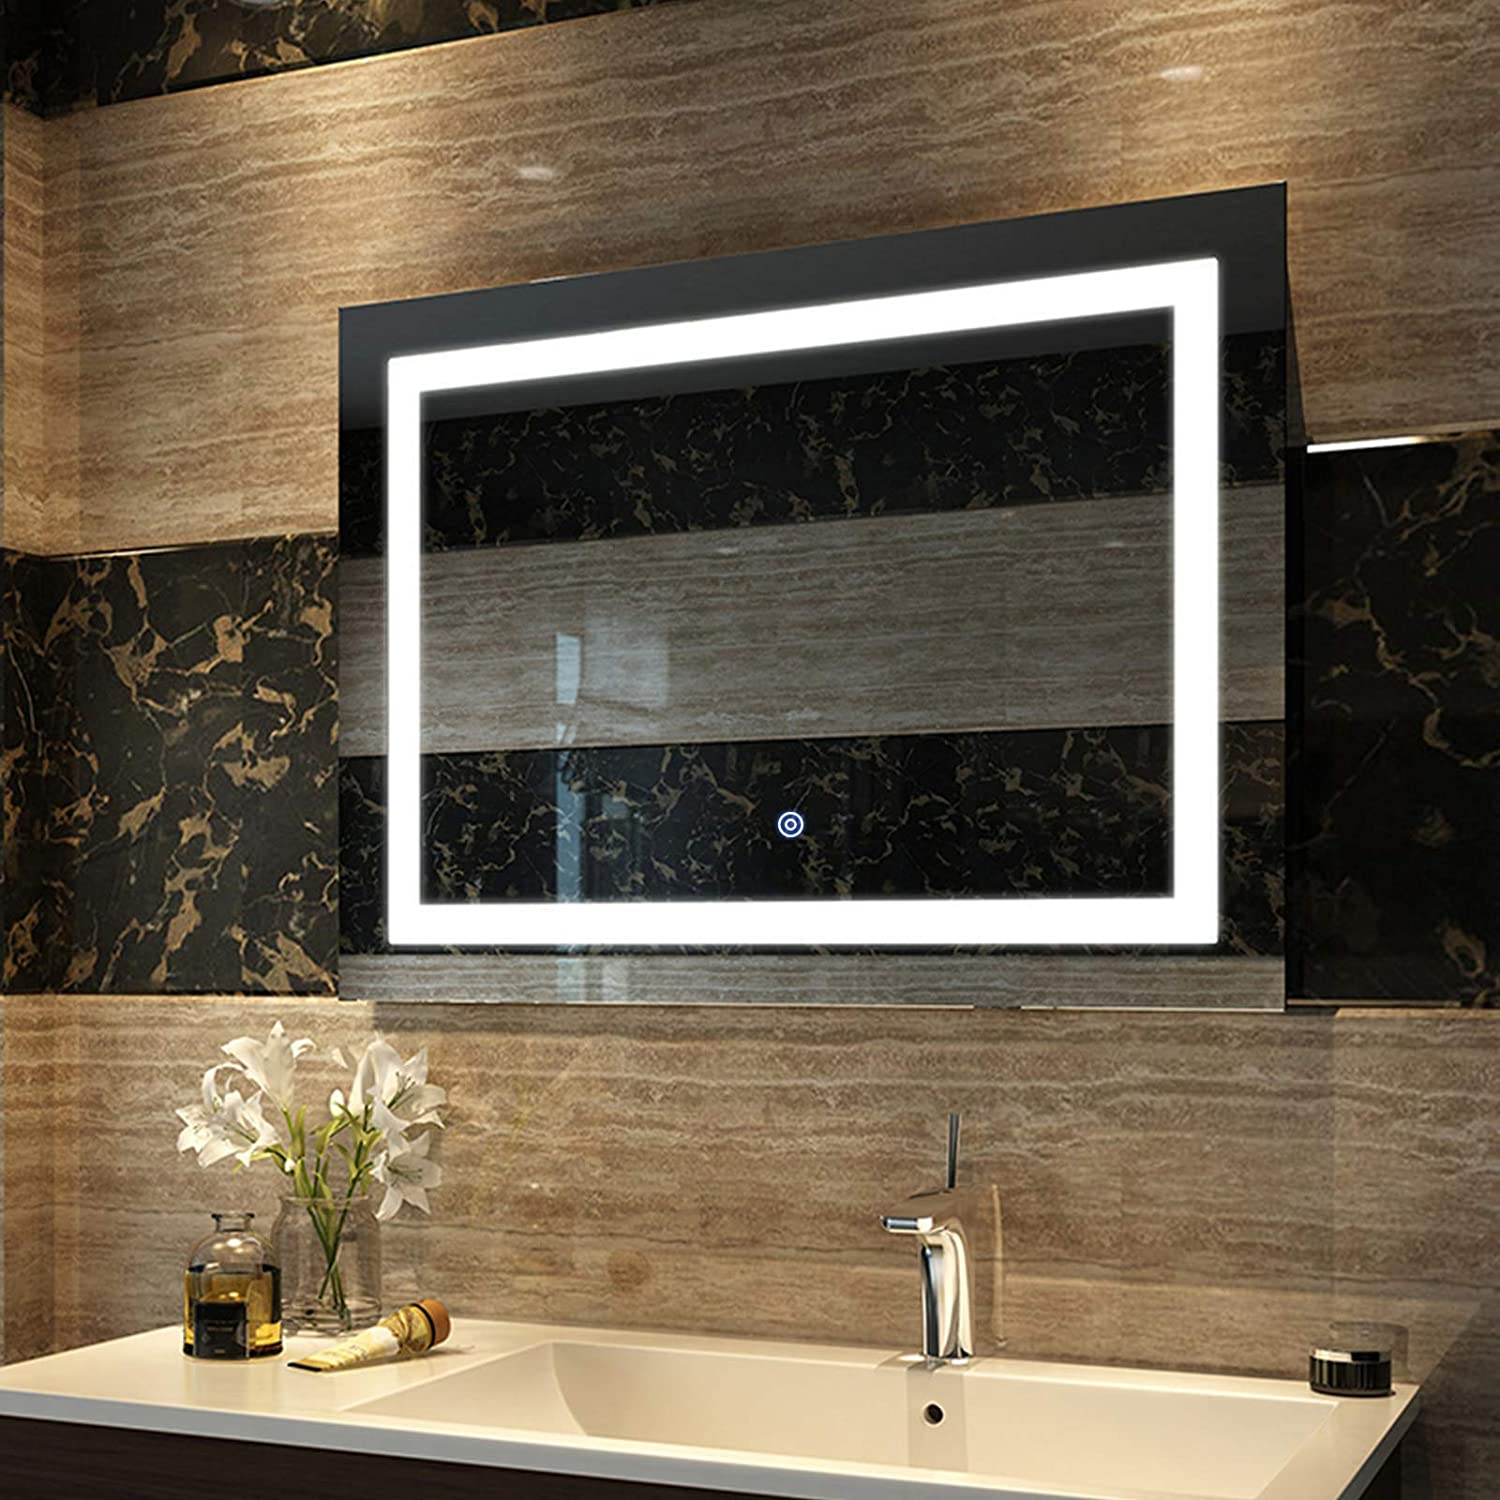 EMKE 36 x 28 Inch LED Bathroom Vanity Mirror Dimmable Large Backlit Mirror with Lights for Wall, Smart Touch Switch, Brightness Memory, IP44 Waterproof, 90+ CRI, UL Listed, Horizontal or Vertiacl